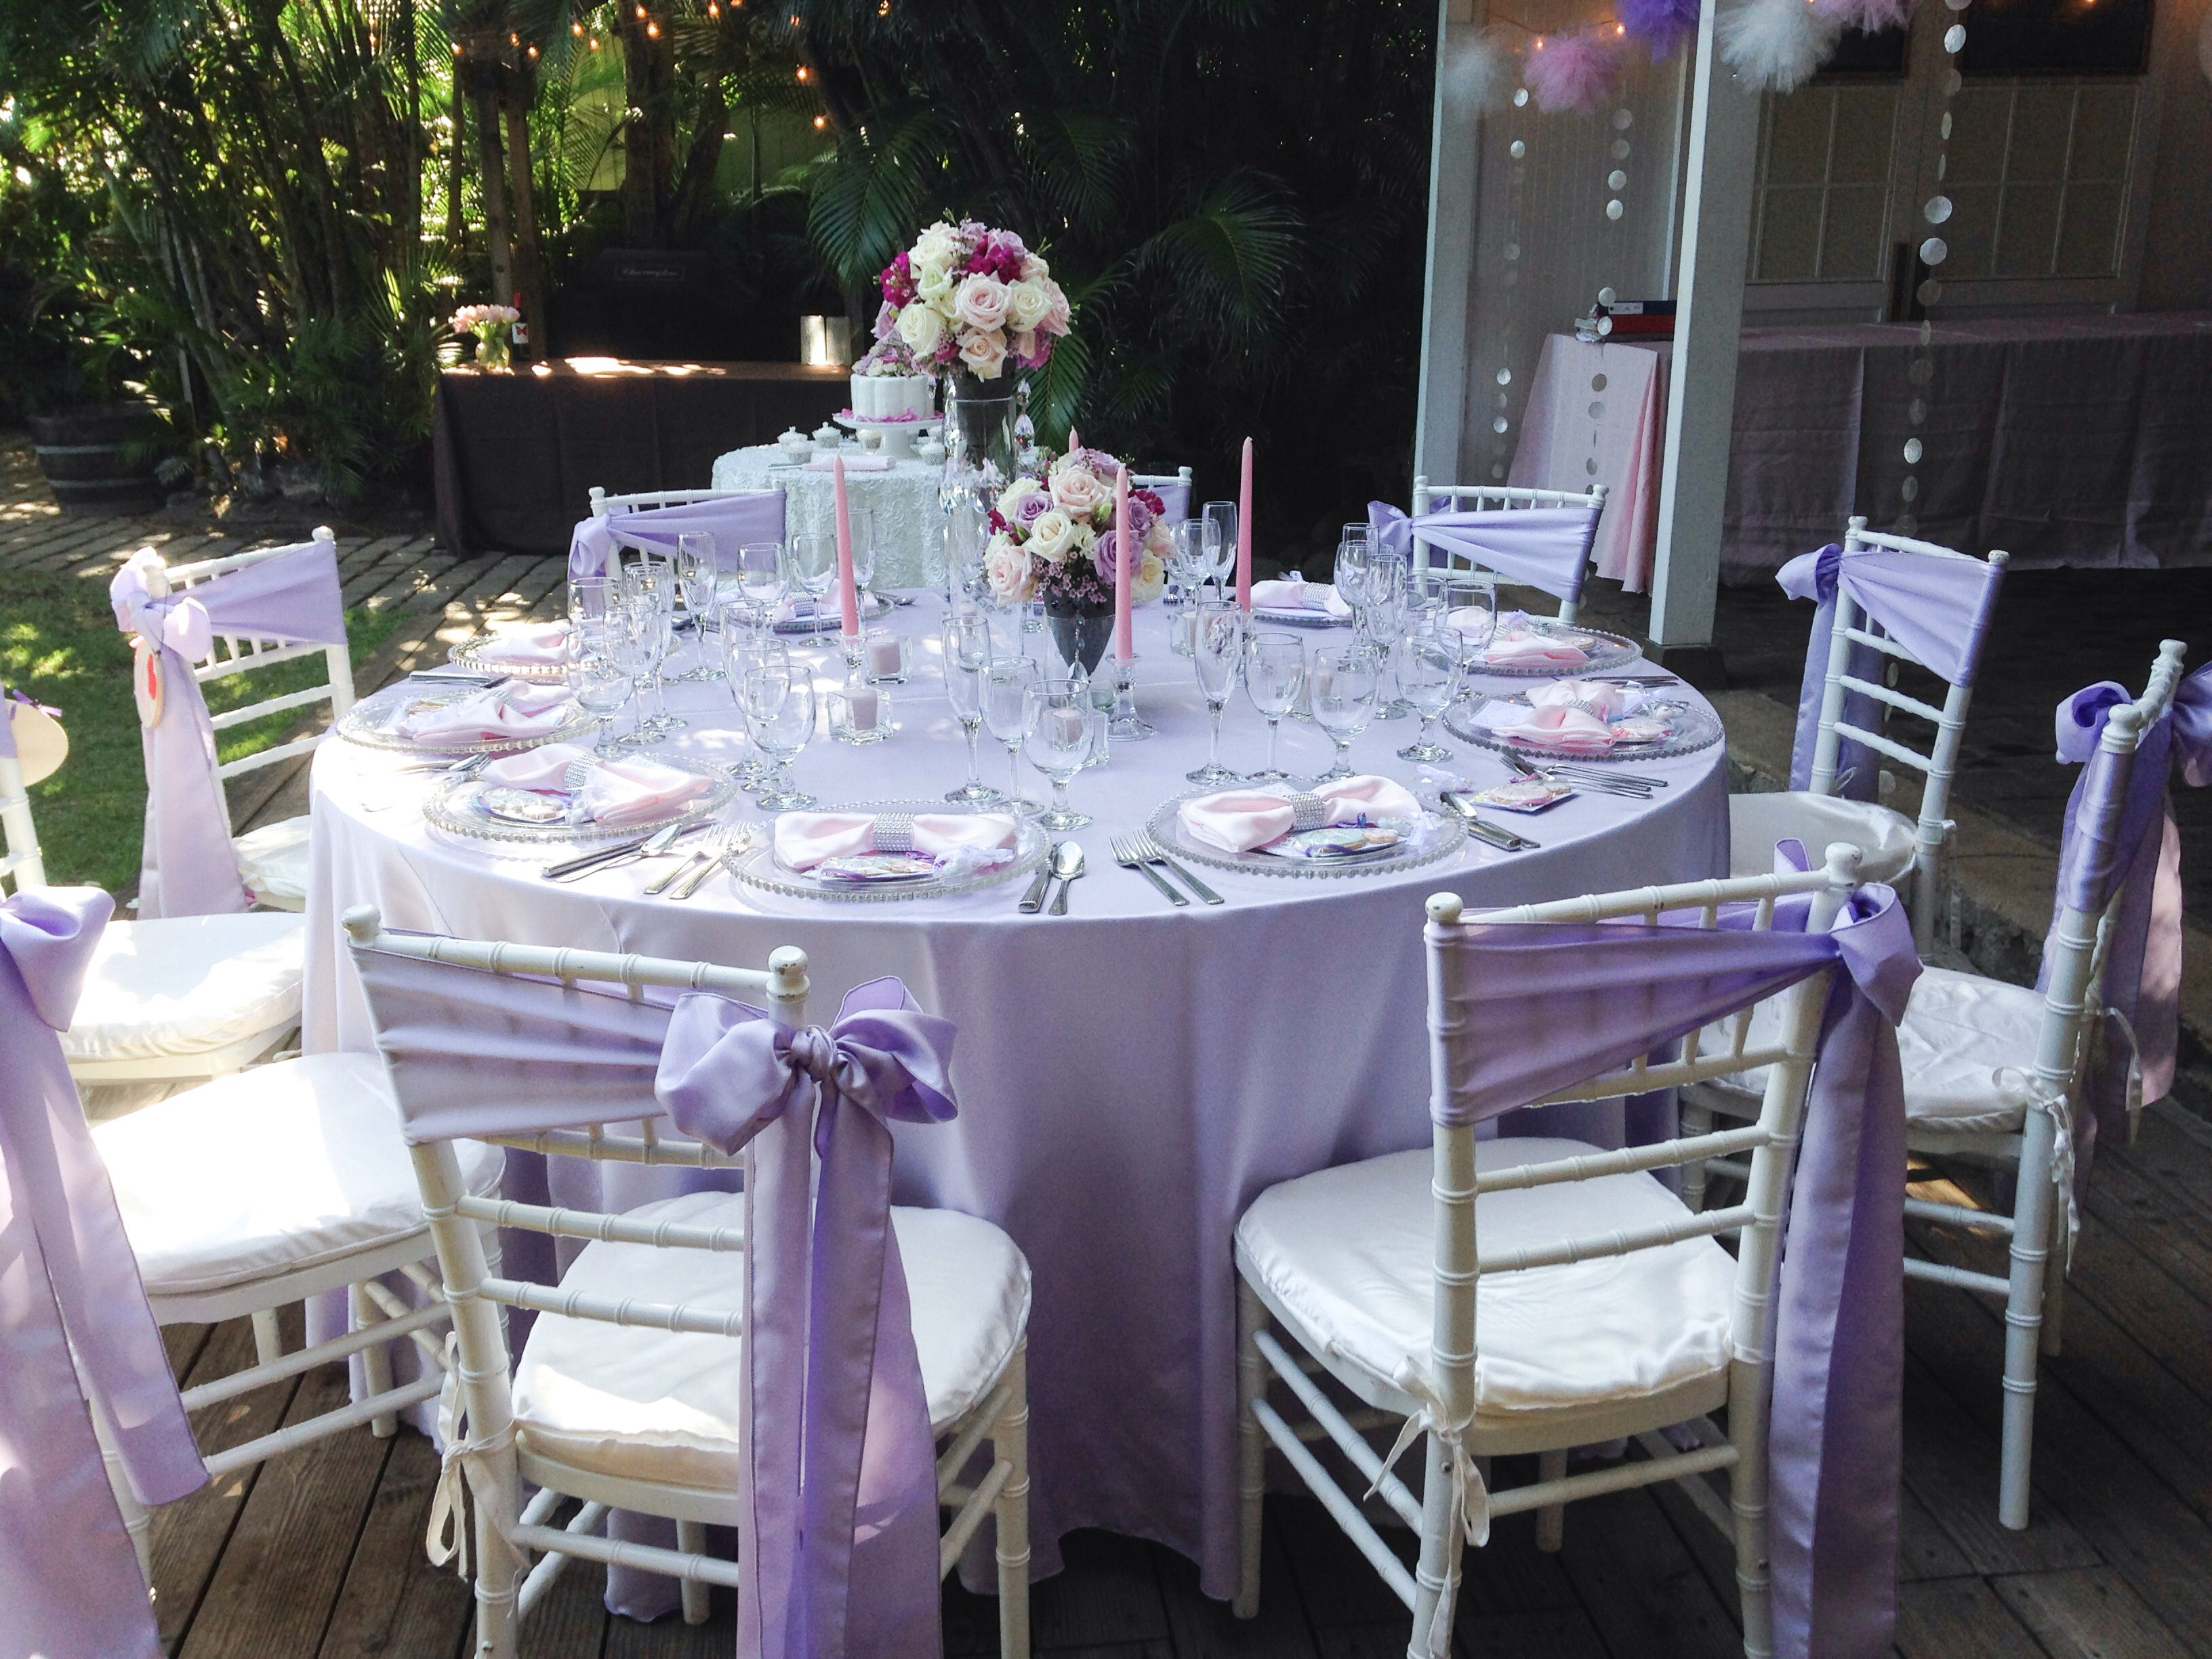 lilac tablecloths + silver chivari chairs +  all white centerpieces